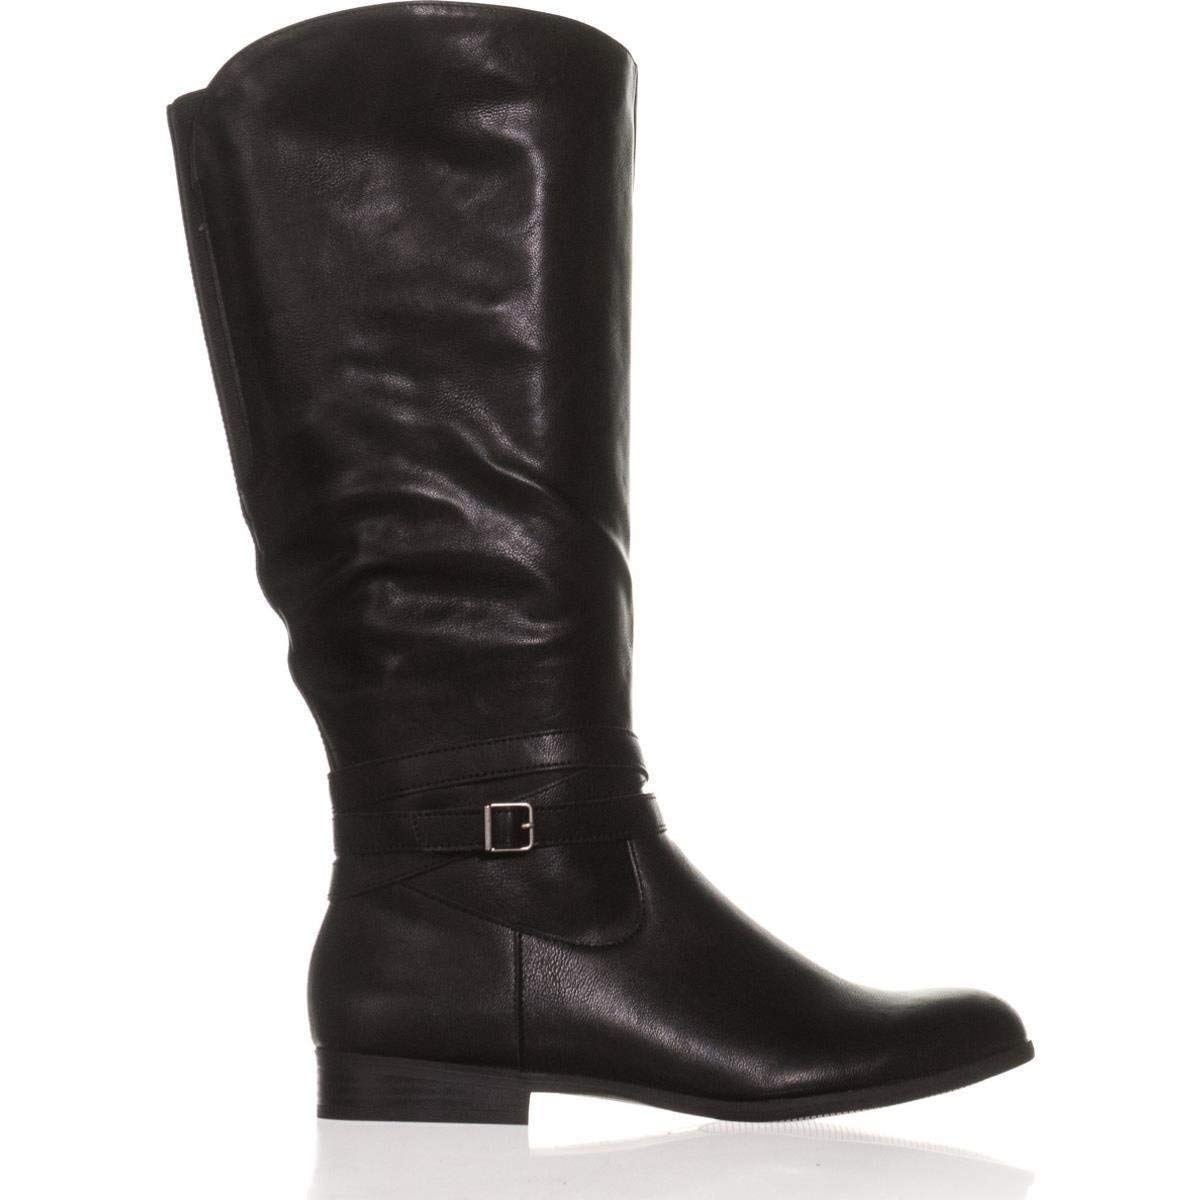 Style & Co. Womens Keppur Keppur Keppur Closed Toe Knee High Fashion Boots e801e5